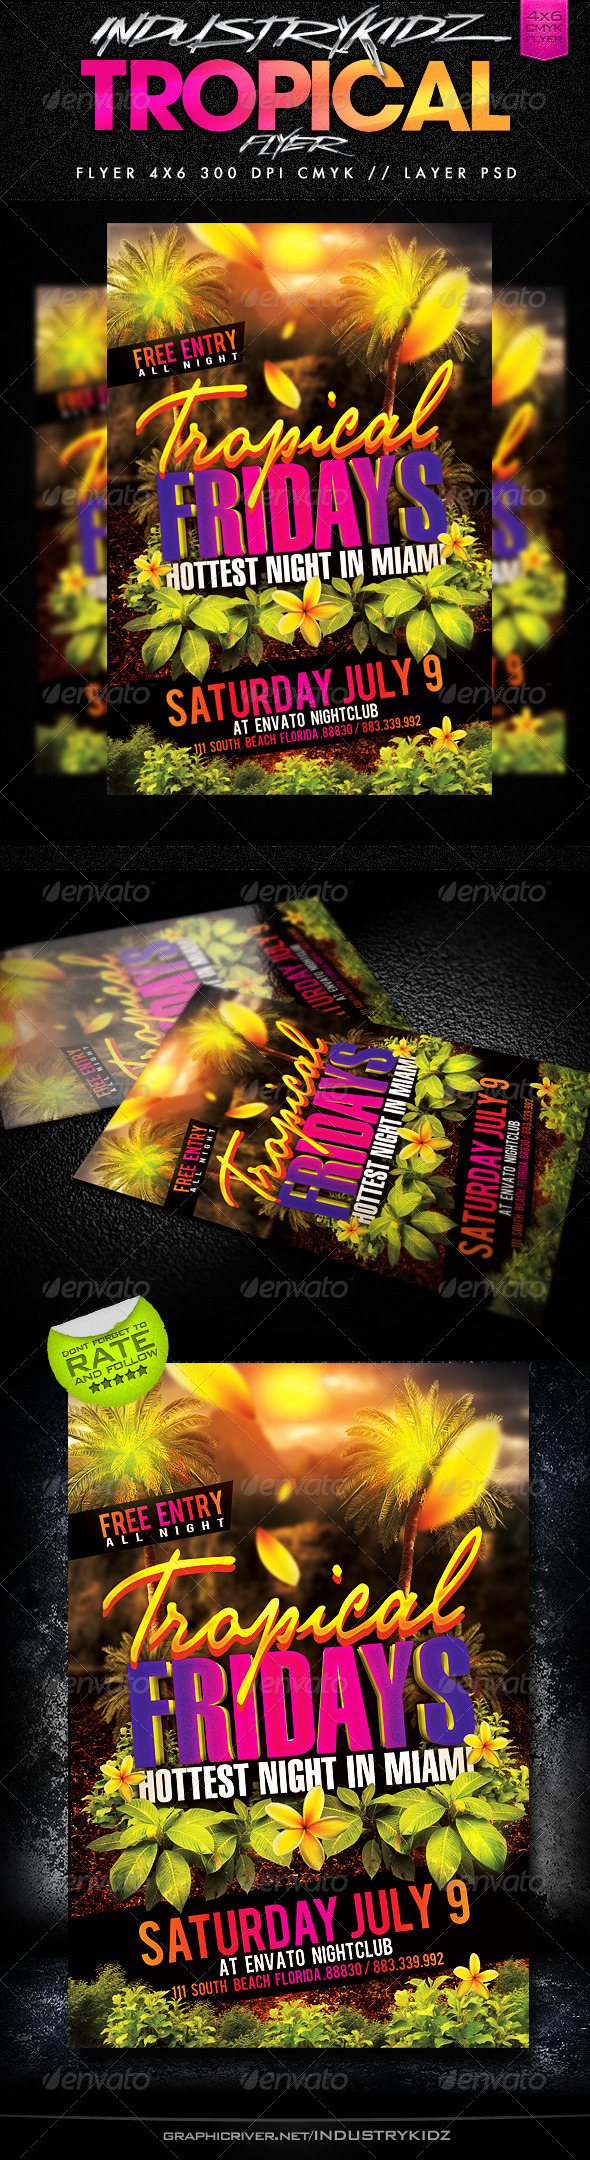 Tropical Fridays  - Events Flyers